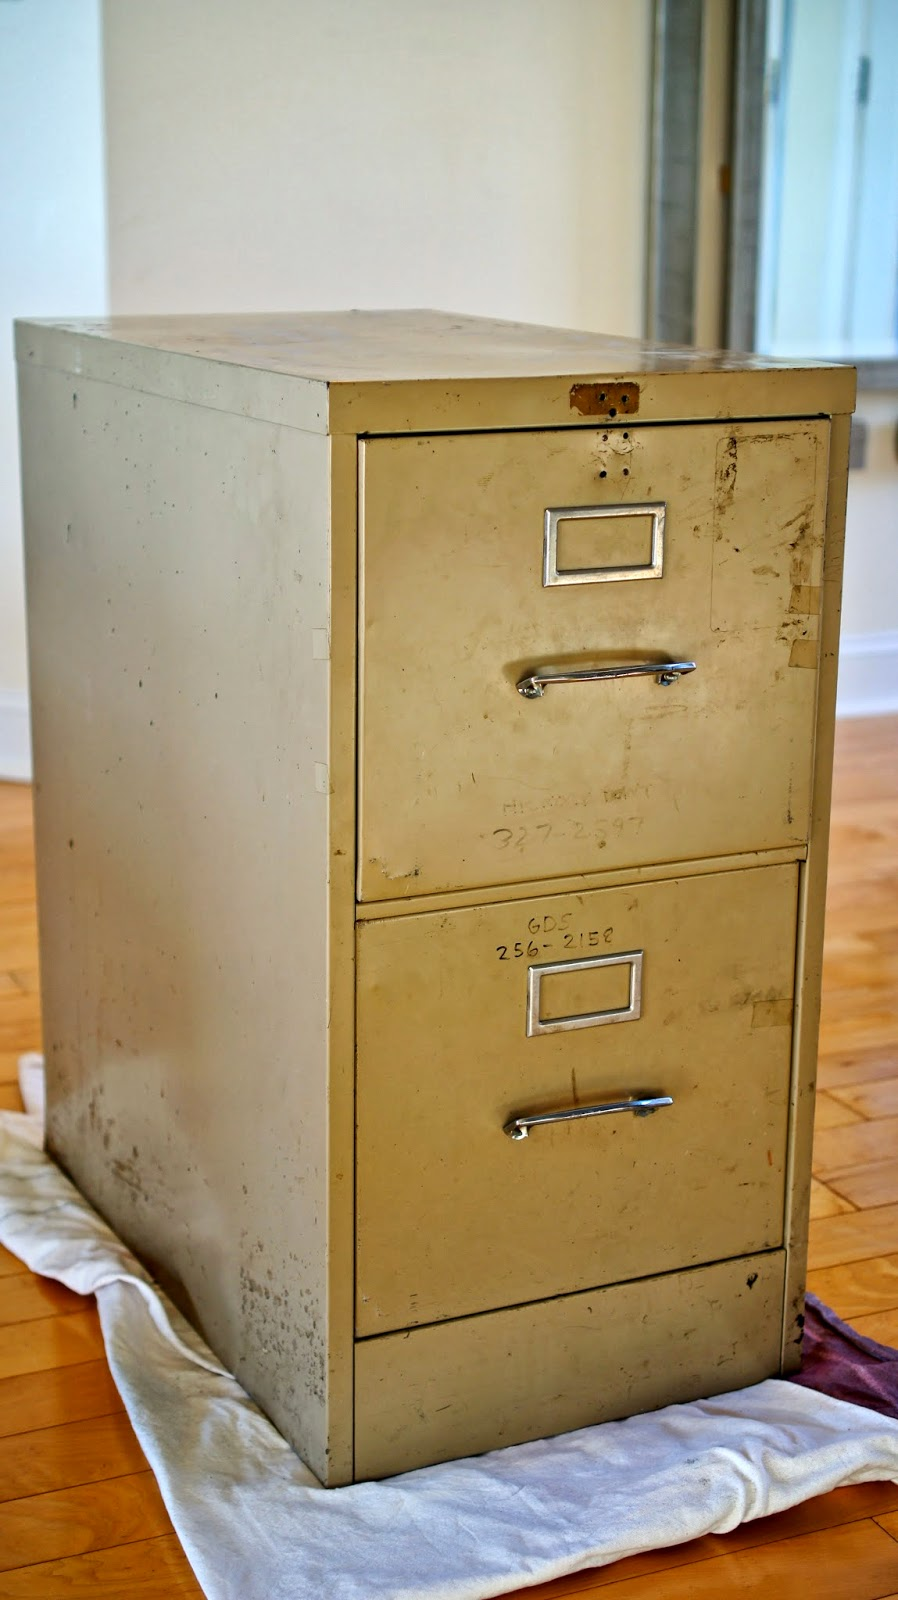 Metal Filing Cabinets Are Pretty Ugly. They Belong In An Office Building,  Not So Much In A Home. There Are Filing Cabinets That Are Made For The Home  Like ...